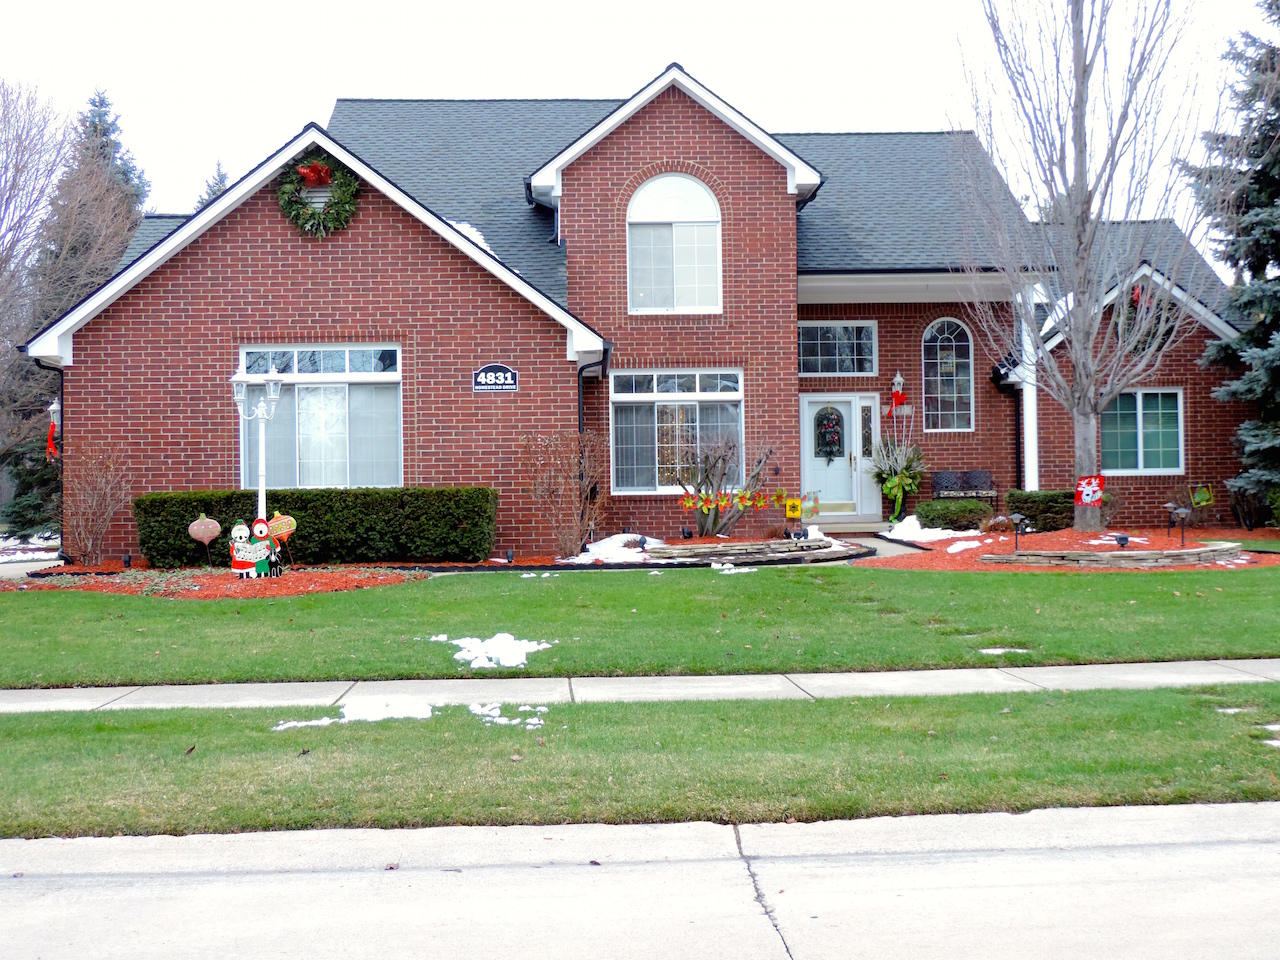 4831 Homestead, Sterling Heights, Michigan 48314